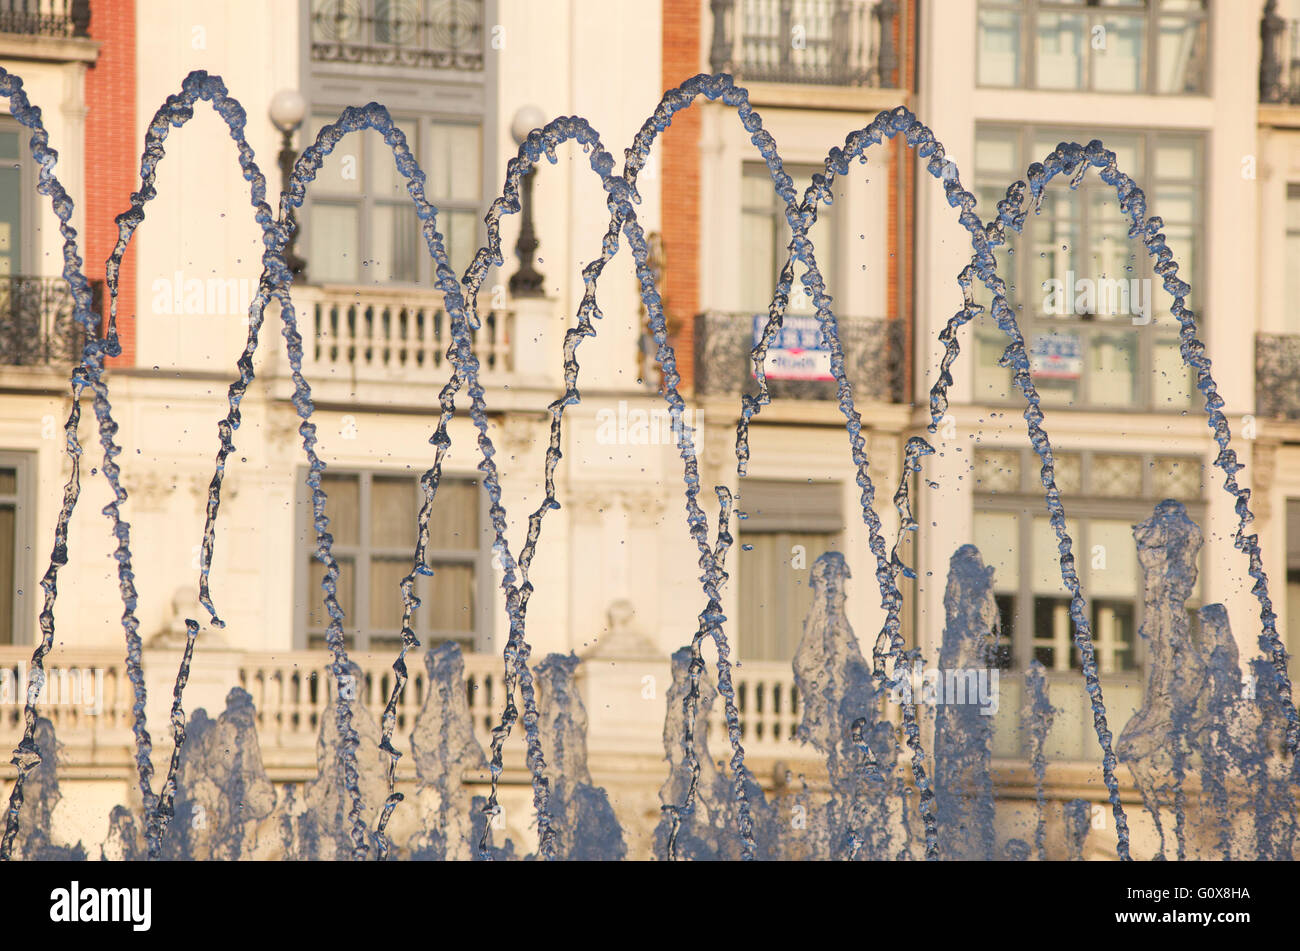 Water jets spurting from a fountain against city building background, Valladolid, Spain - Stock Image